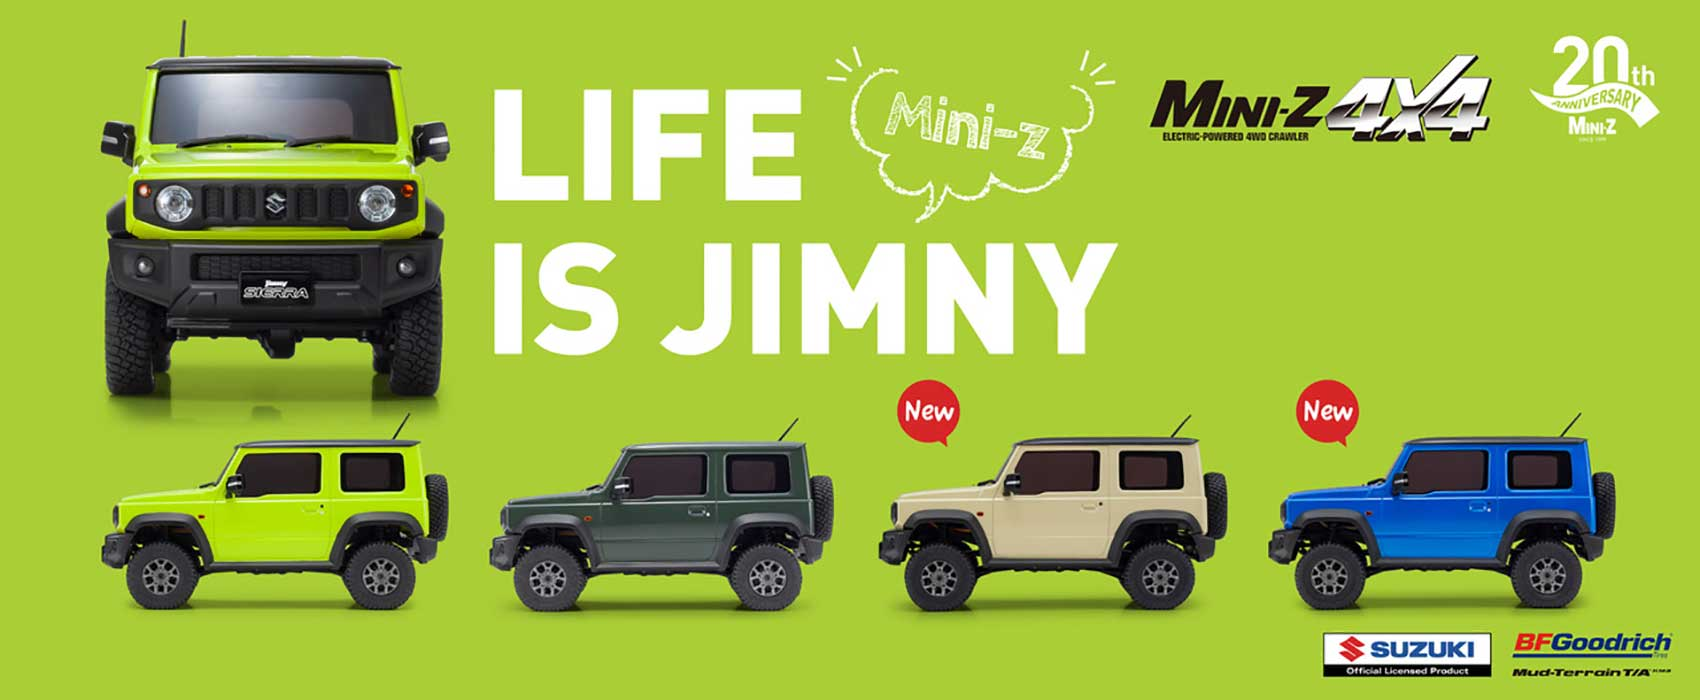 Kyosho's Mini-Z 4×4 Suzuki Jimny Now Available in Four Colors